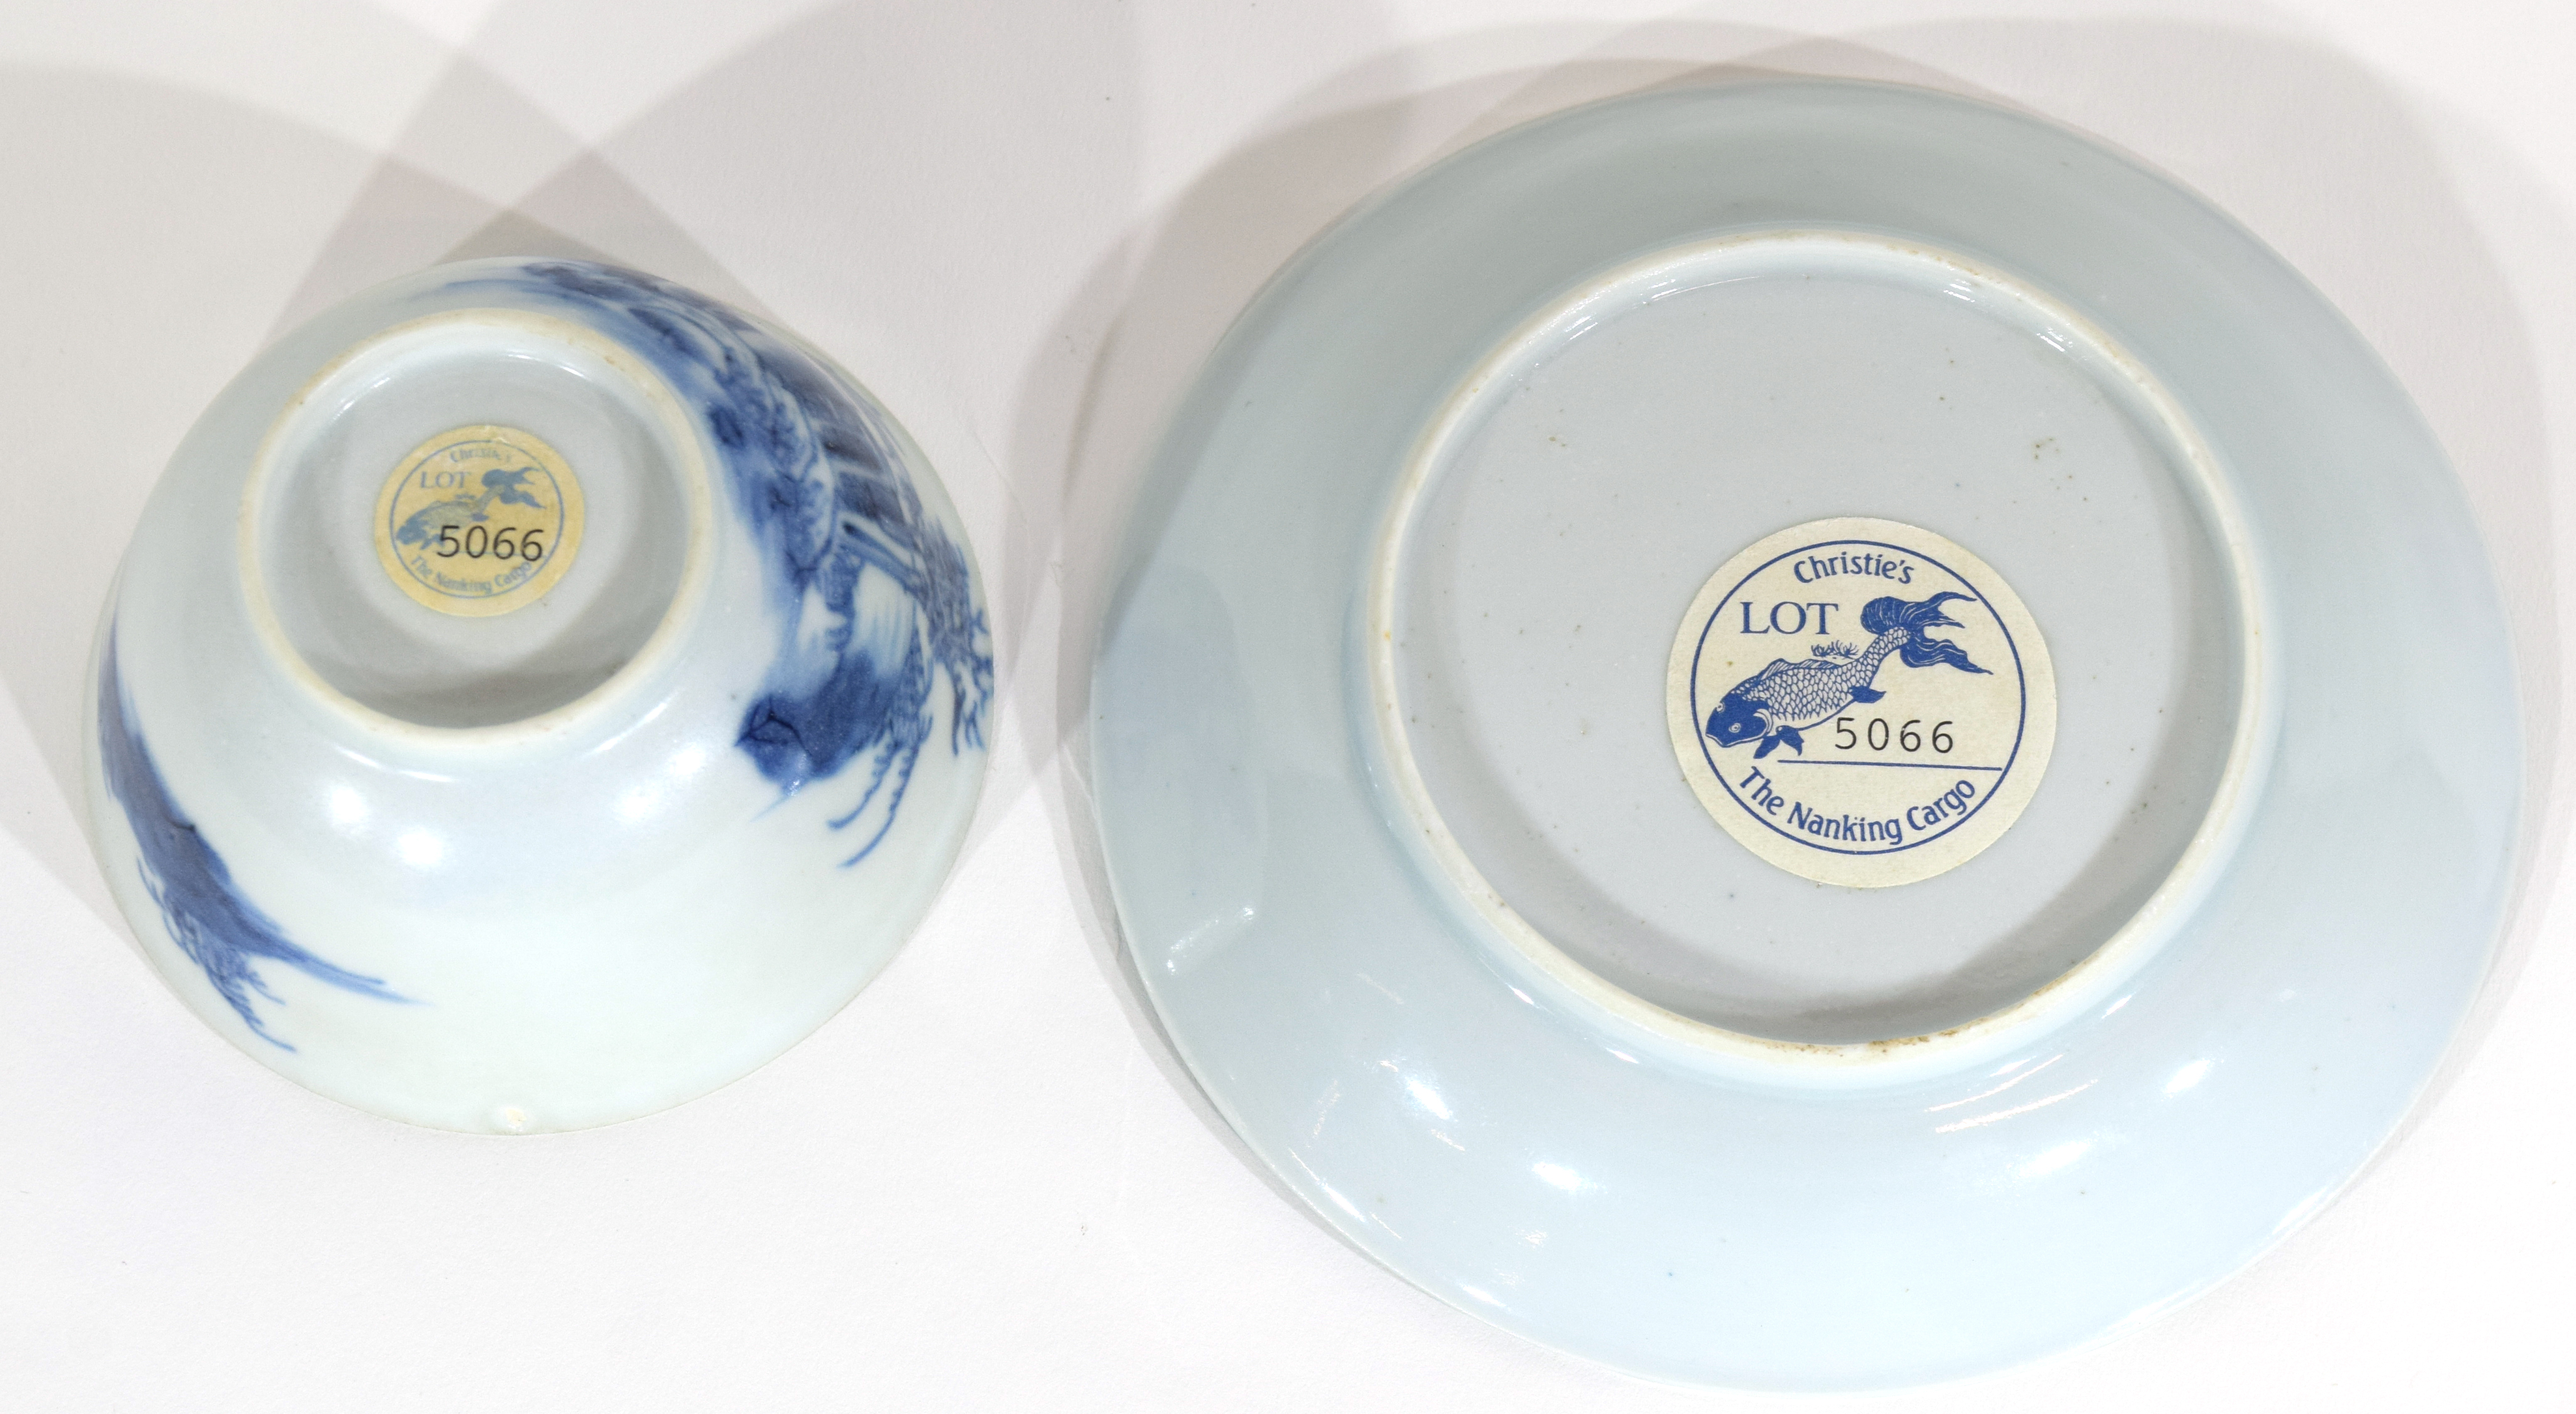 18th century Chinese porcelain Nanking Cargo tea bowl and saucer - Image 8 of 15